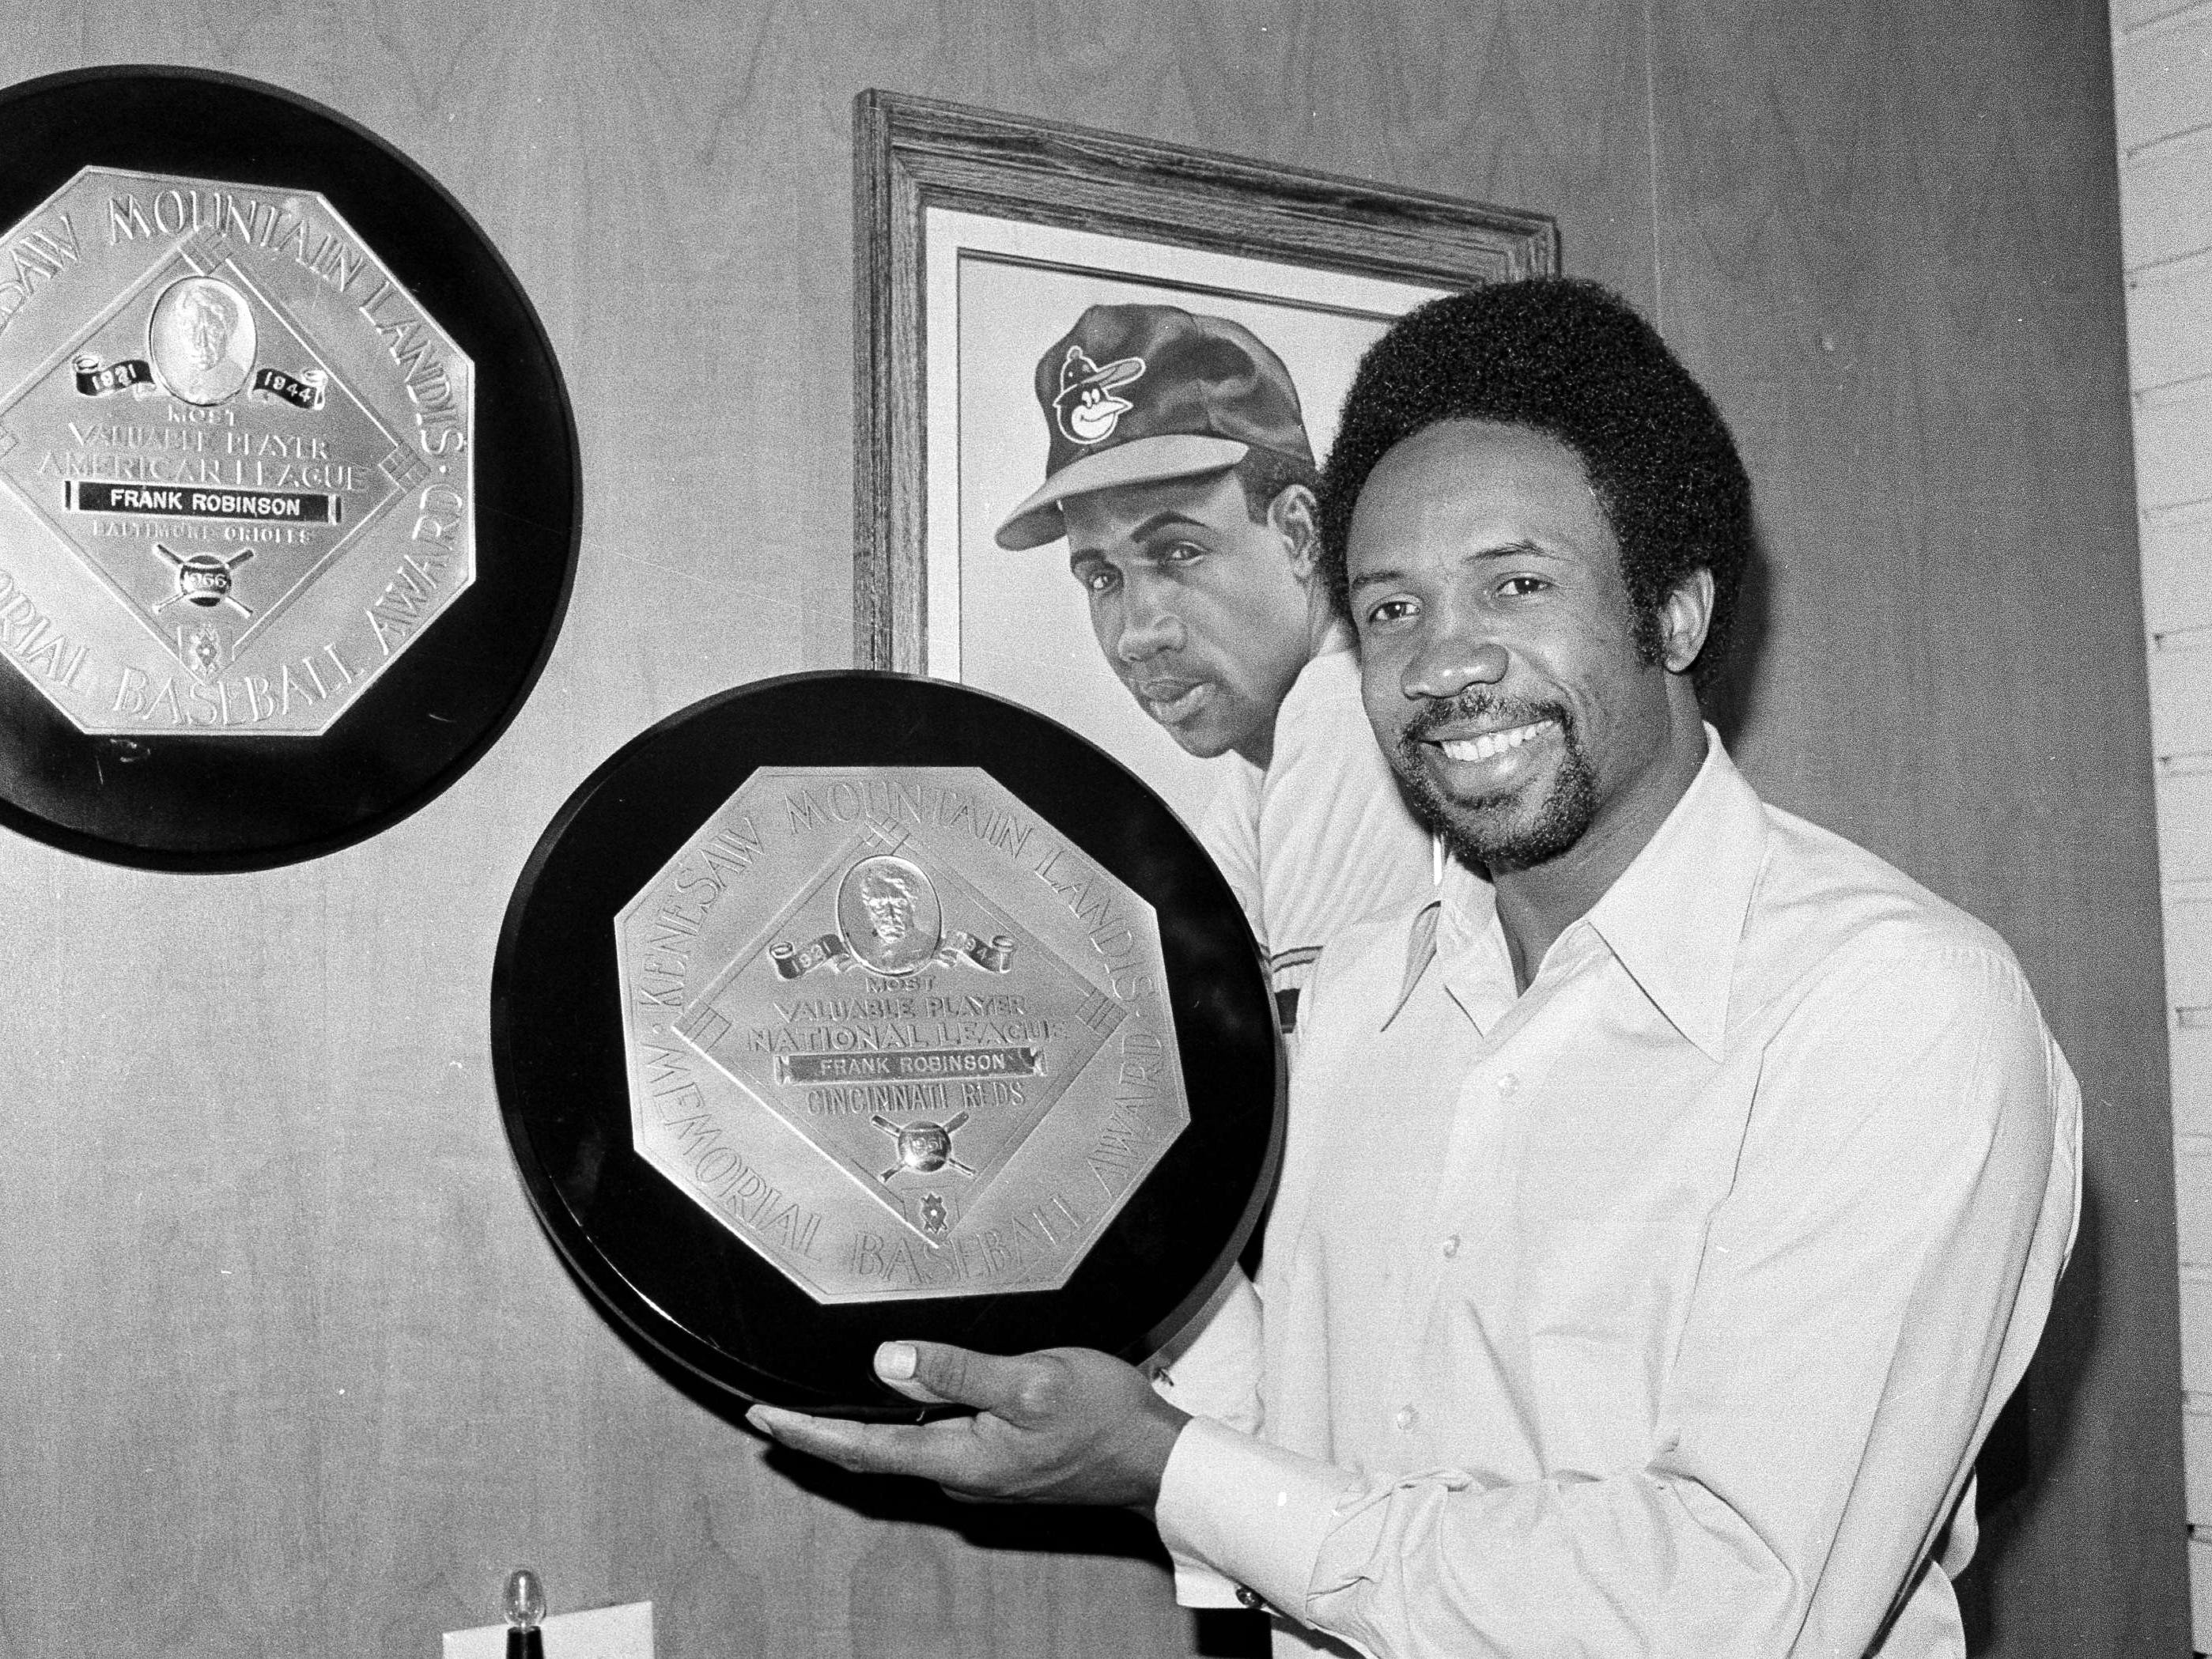 Frank Robinson is the only player to win the MVP award in both leagues.